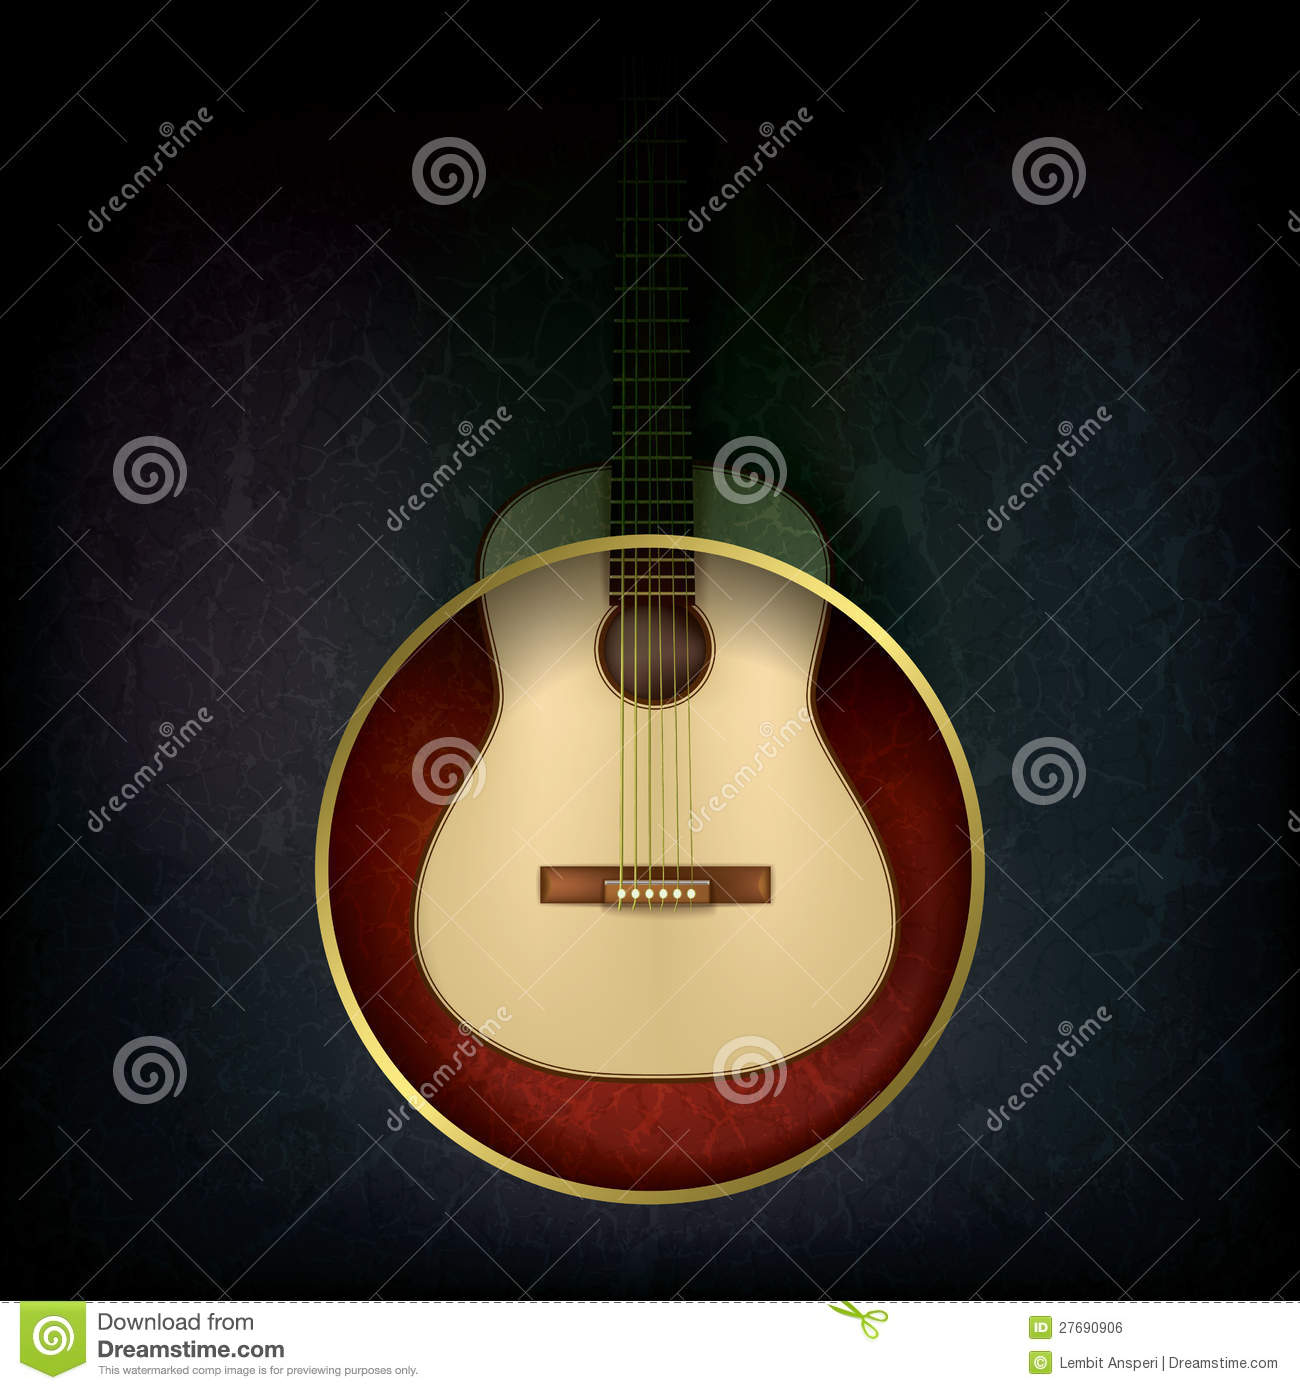 music time guitar abstract - photo #27